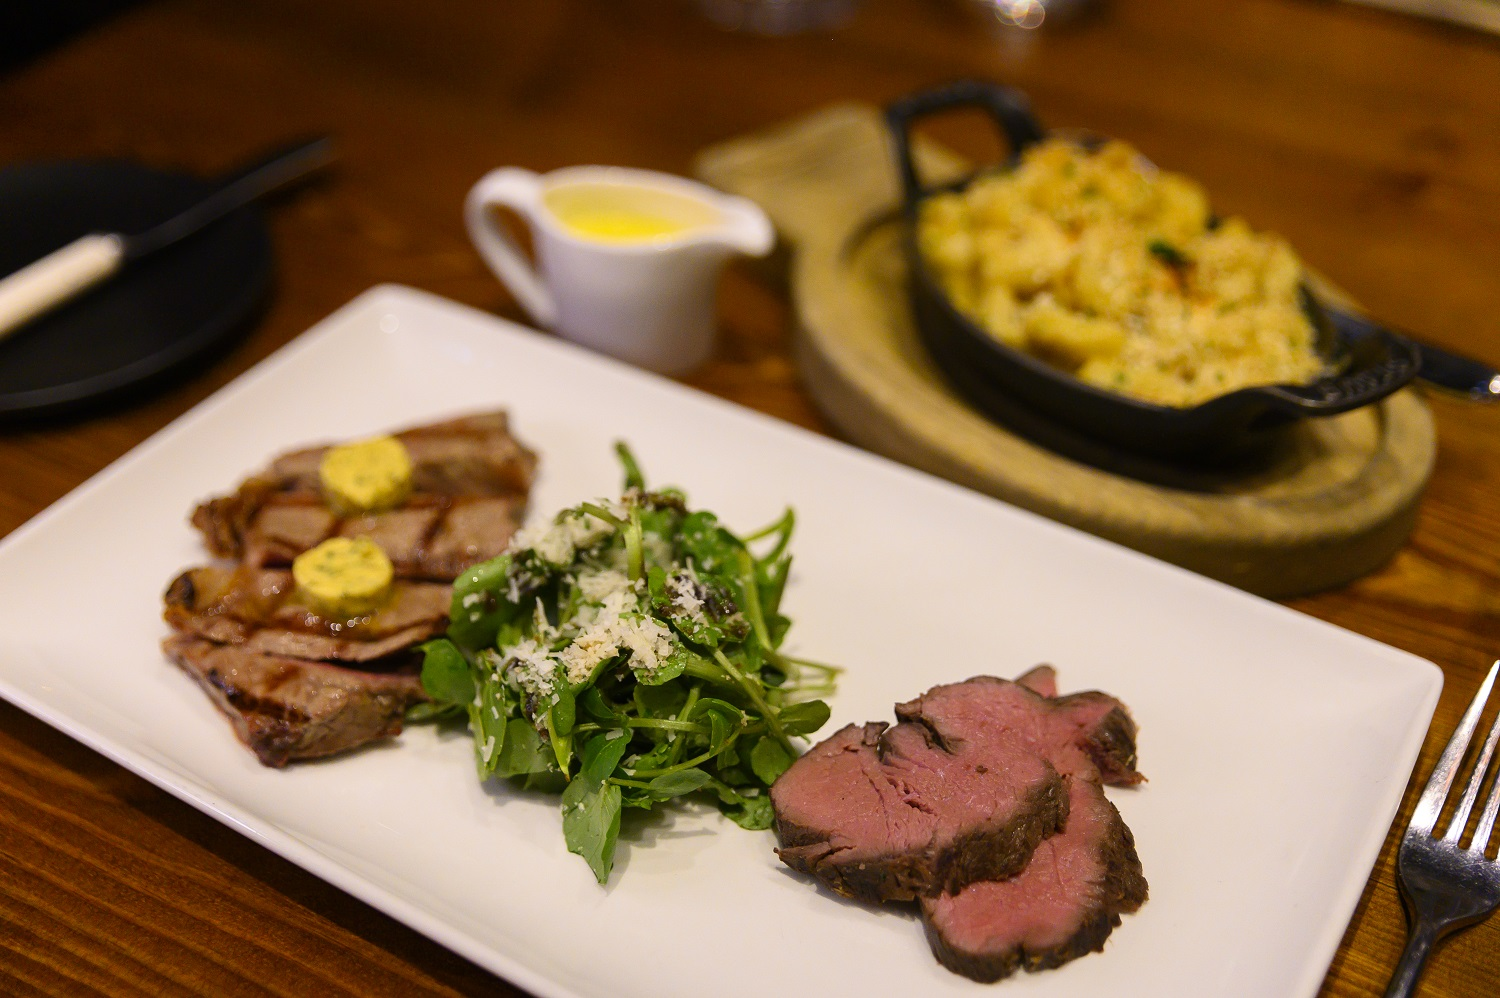 Showcase cuts from the Josper grill with lobster mac and cheese